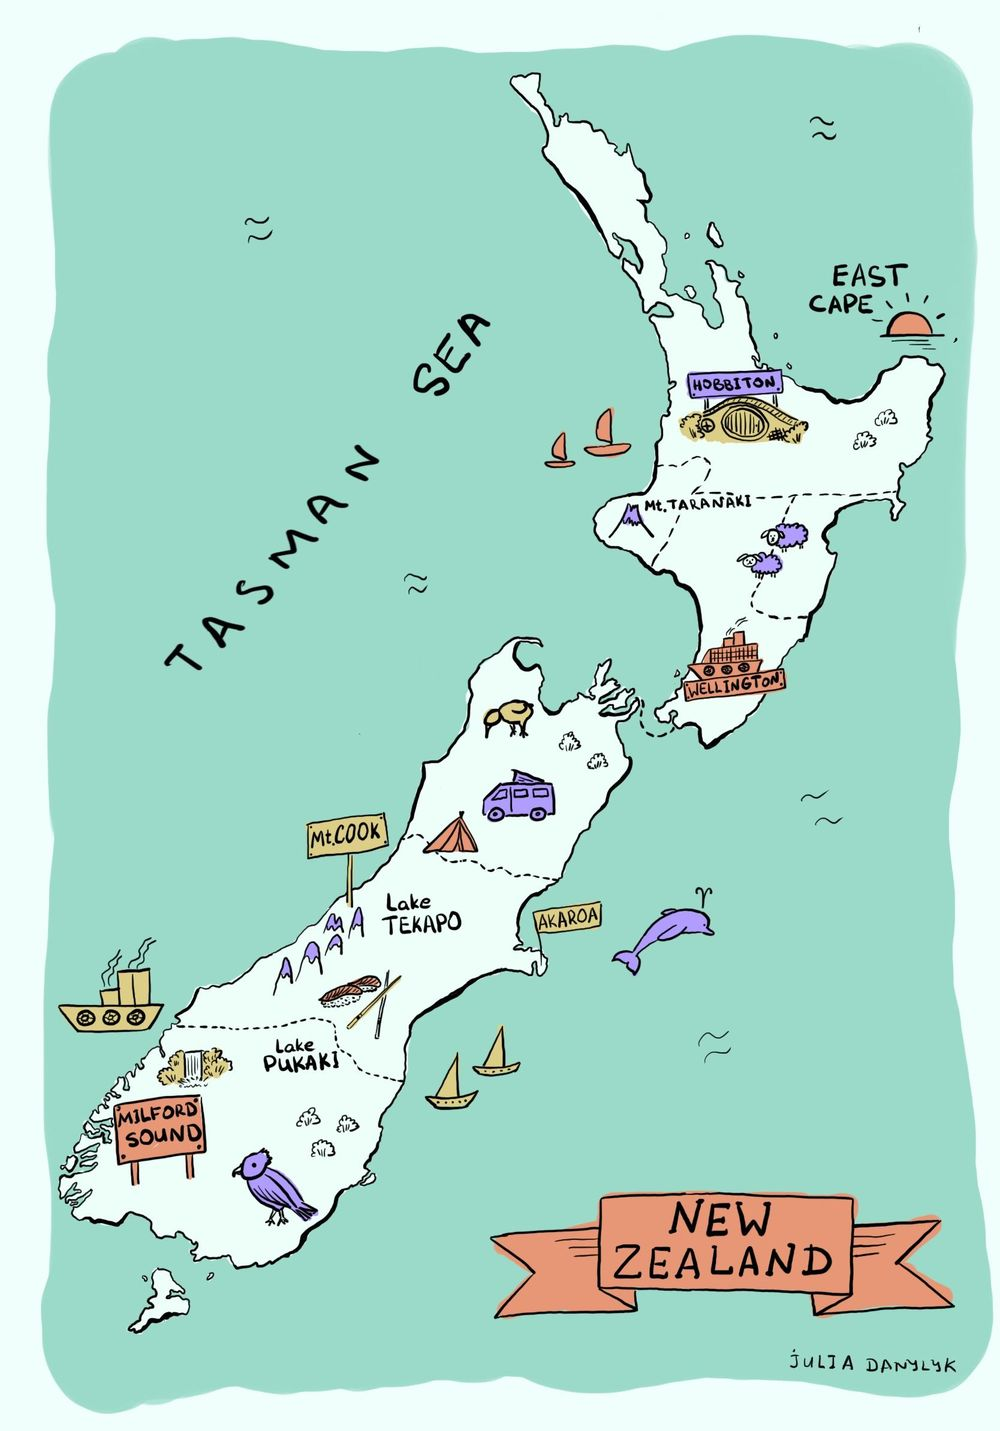 New Zealand - image 1 - student project